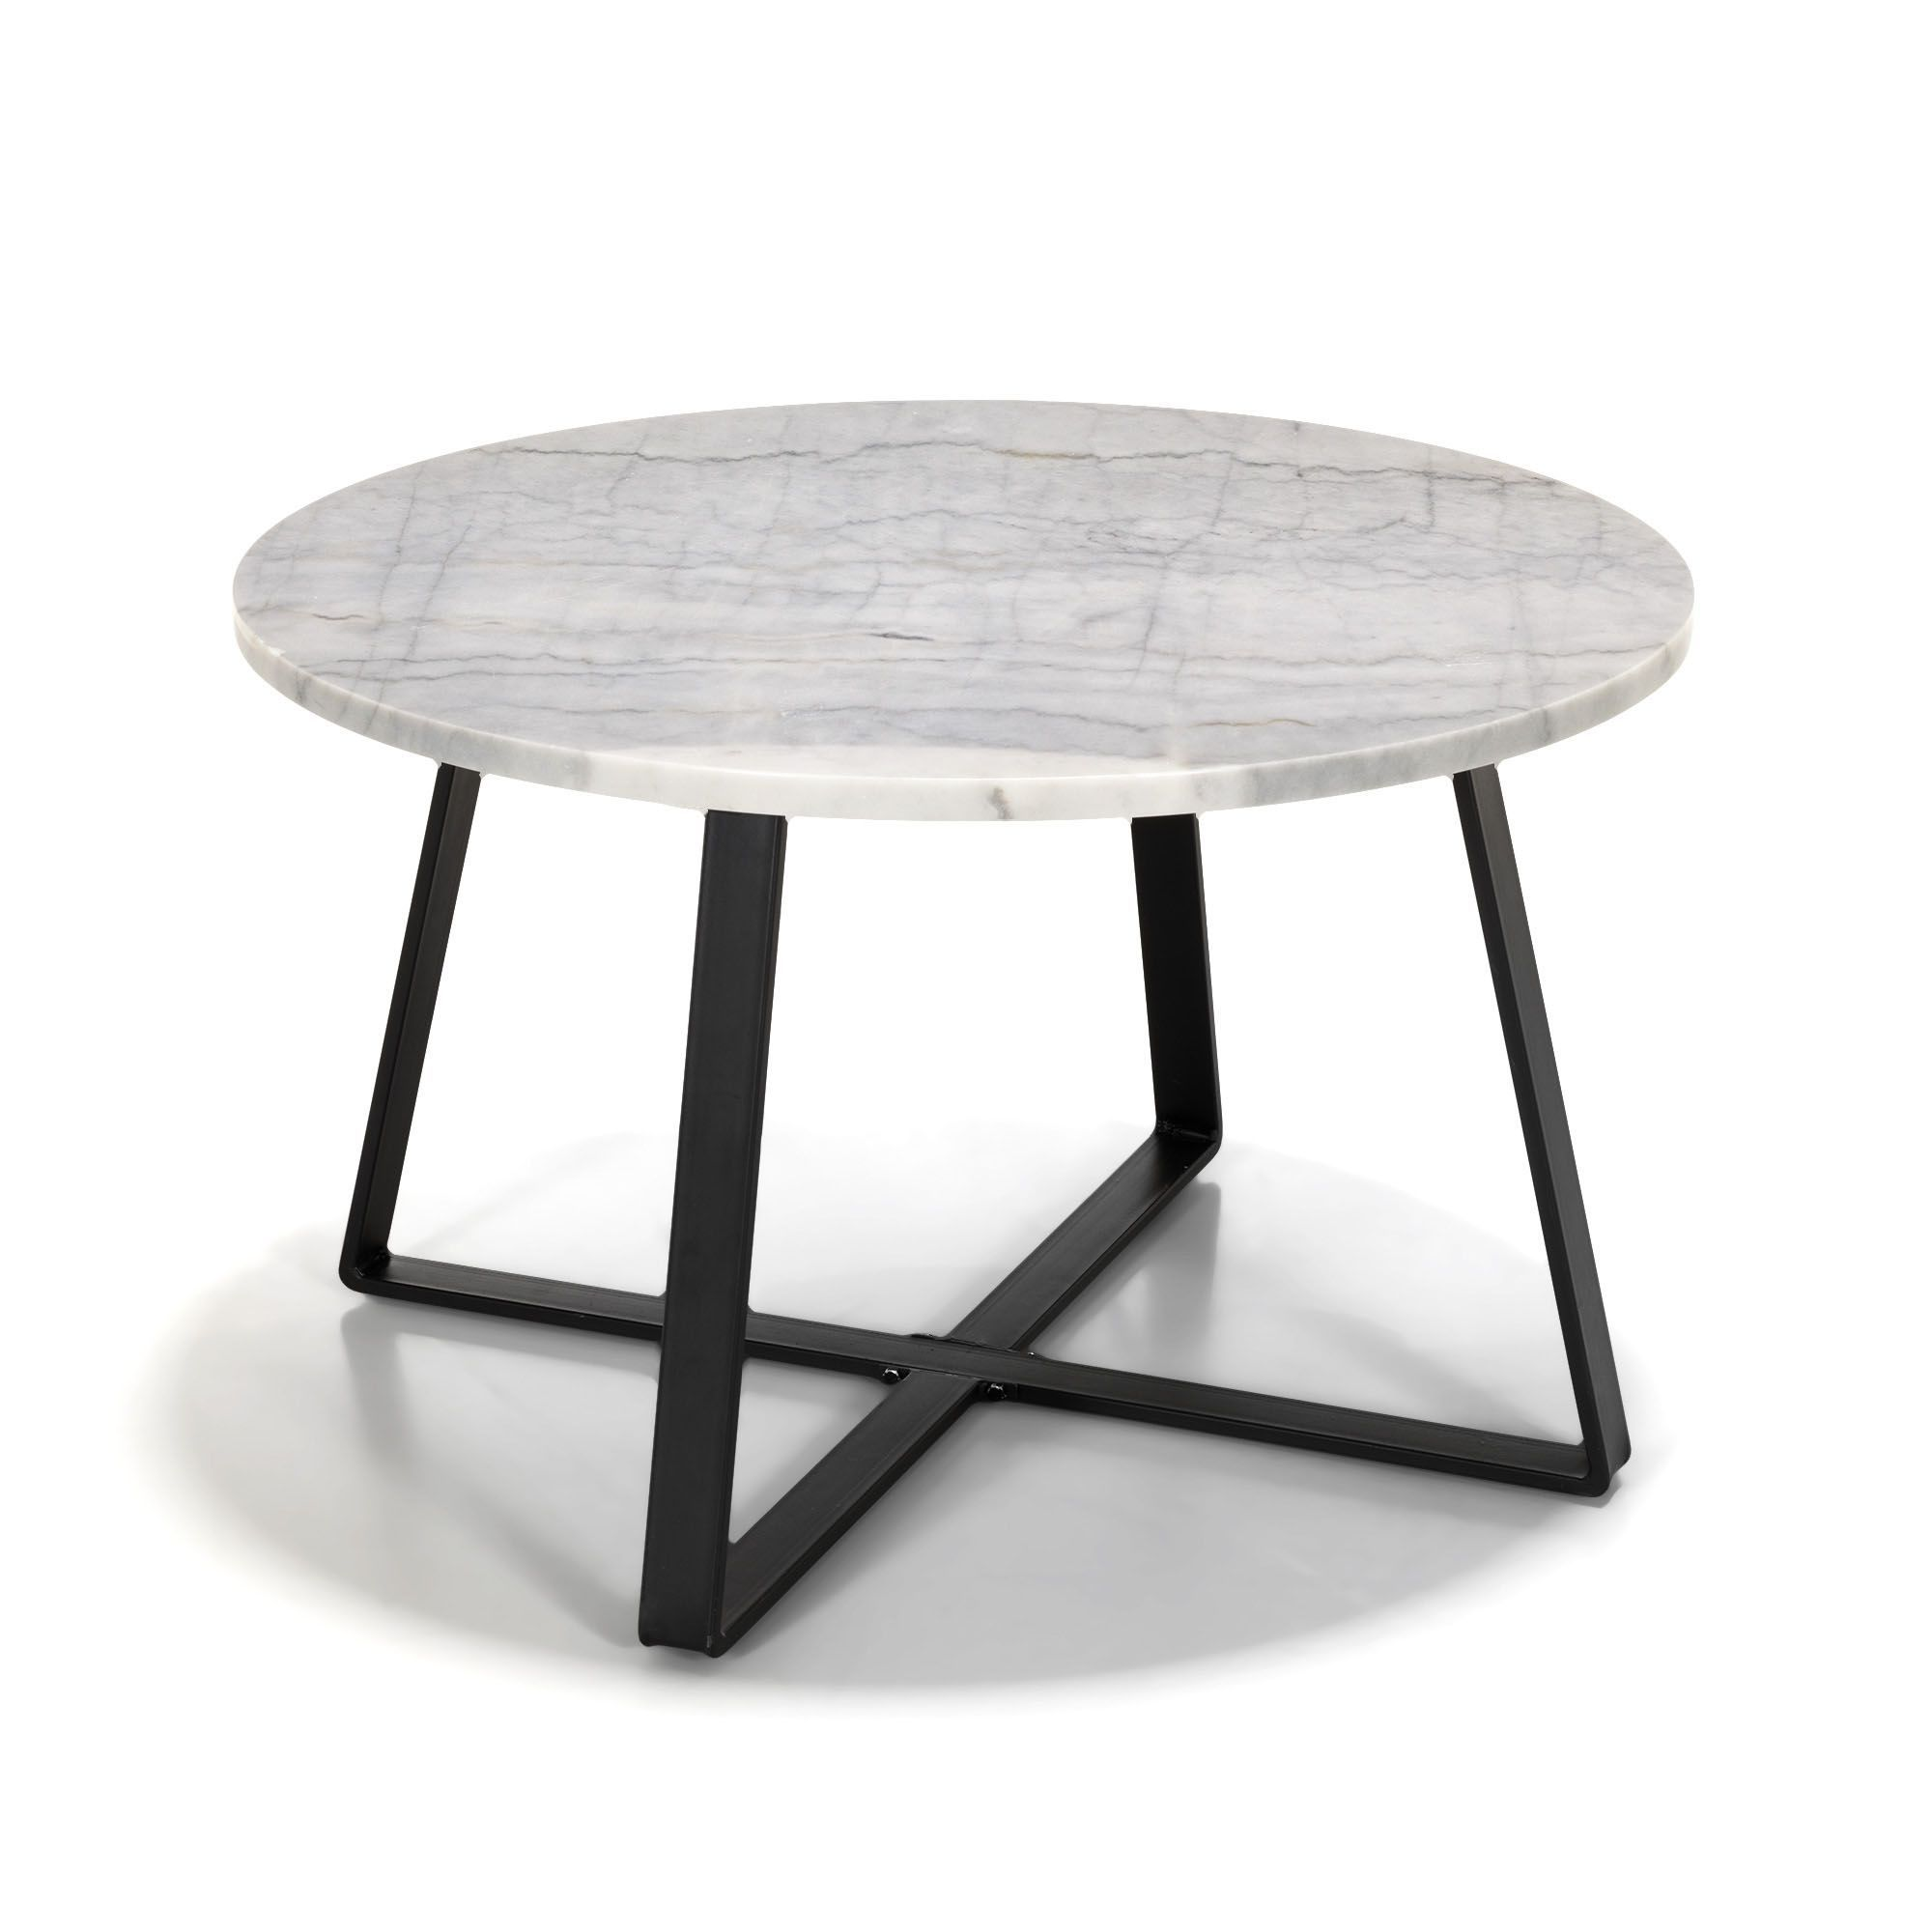 Tabouret Marche Pied Bois Marche Pied Bois Alinea Awesome Pied Table Basse Metal